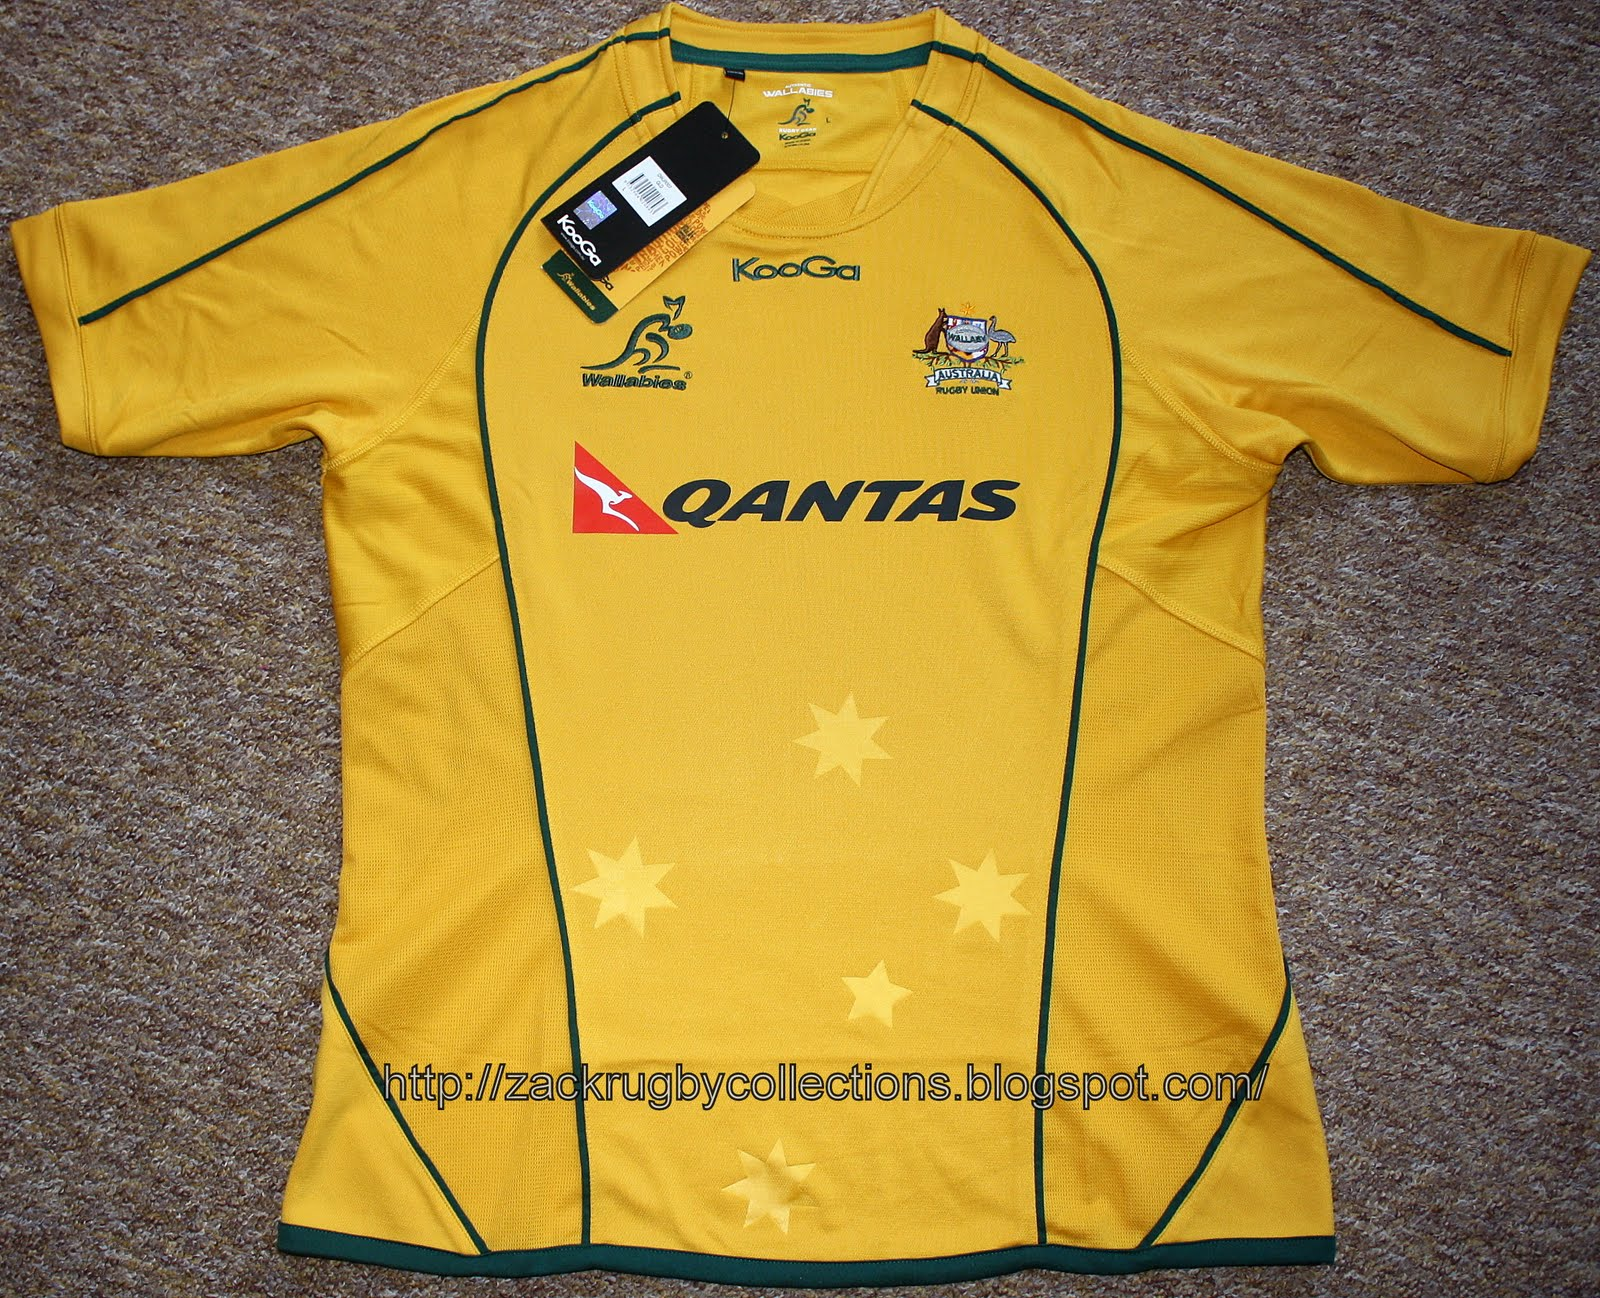 03719257d8b Australia Pro Home 2010/2012 Rugby Jersey made by KooGa. Official Australia  Wallabies Product released for 2010/2012 rugby season.